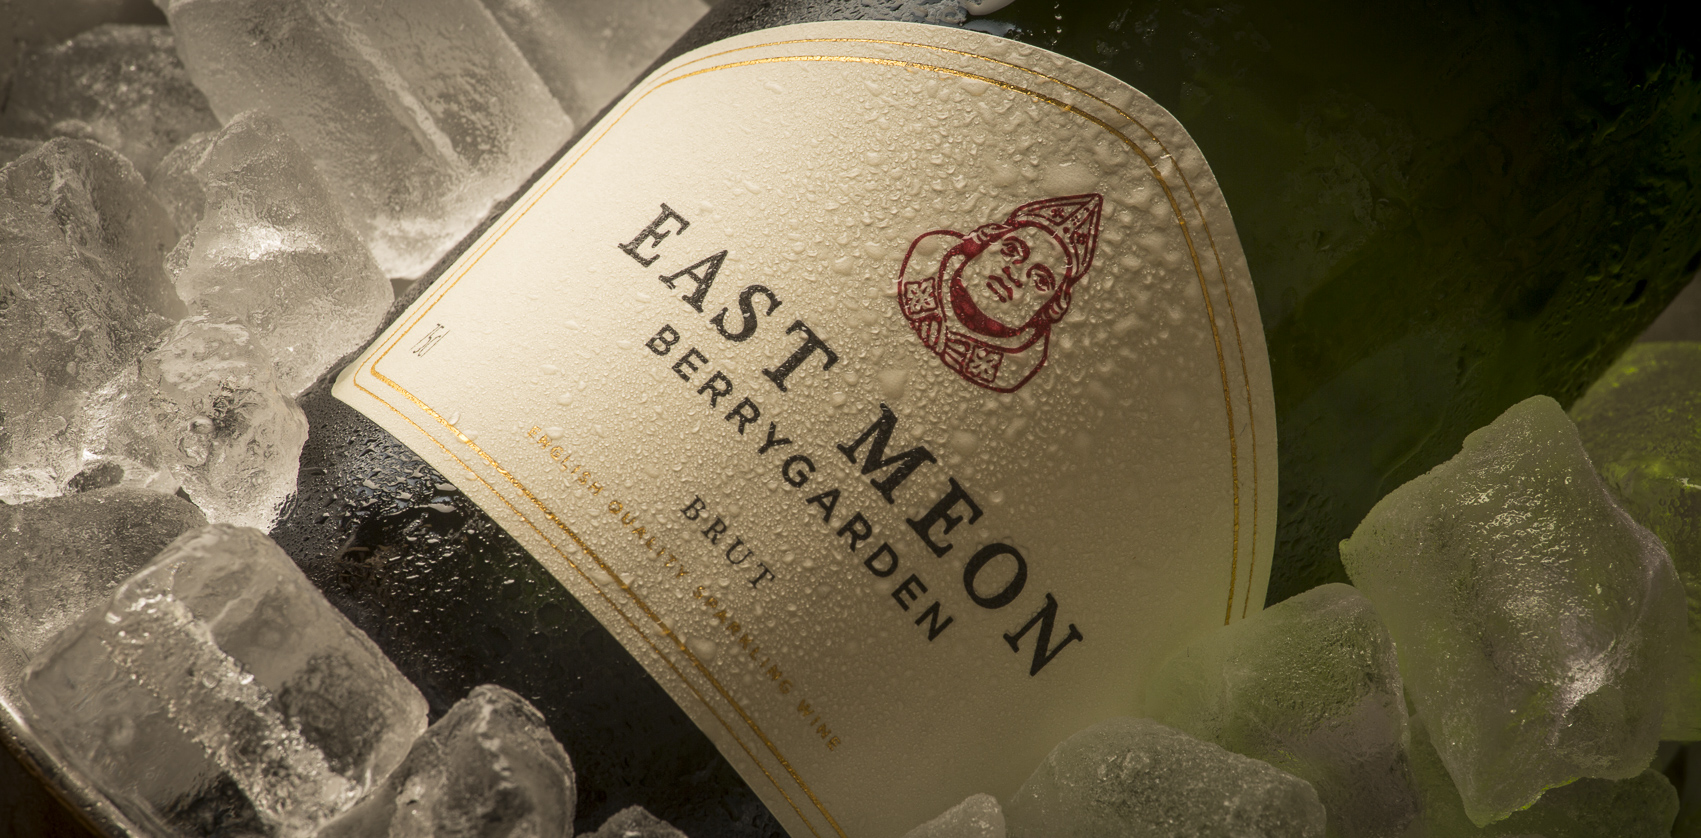 East Meon sparkling wine on ice